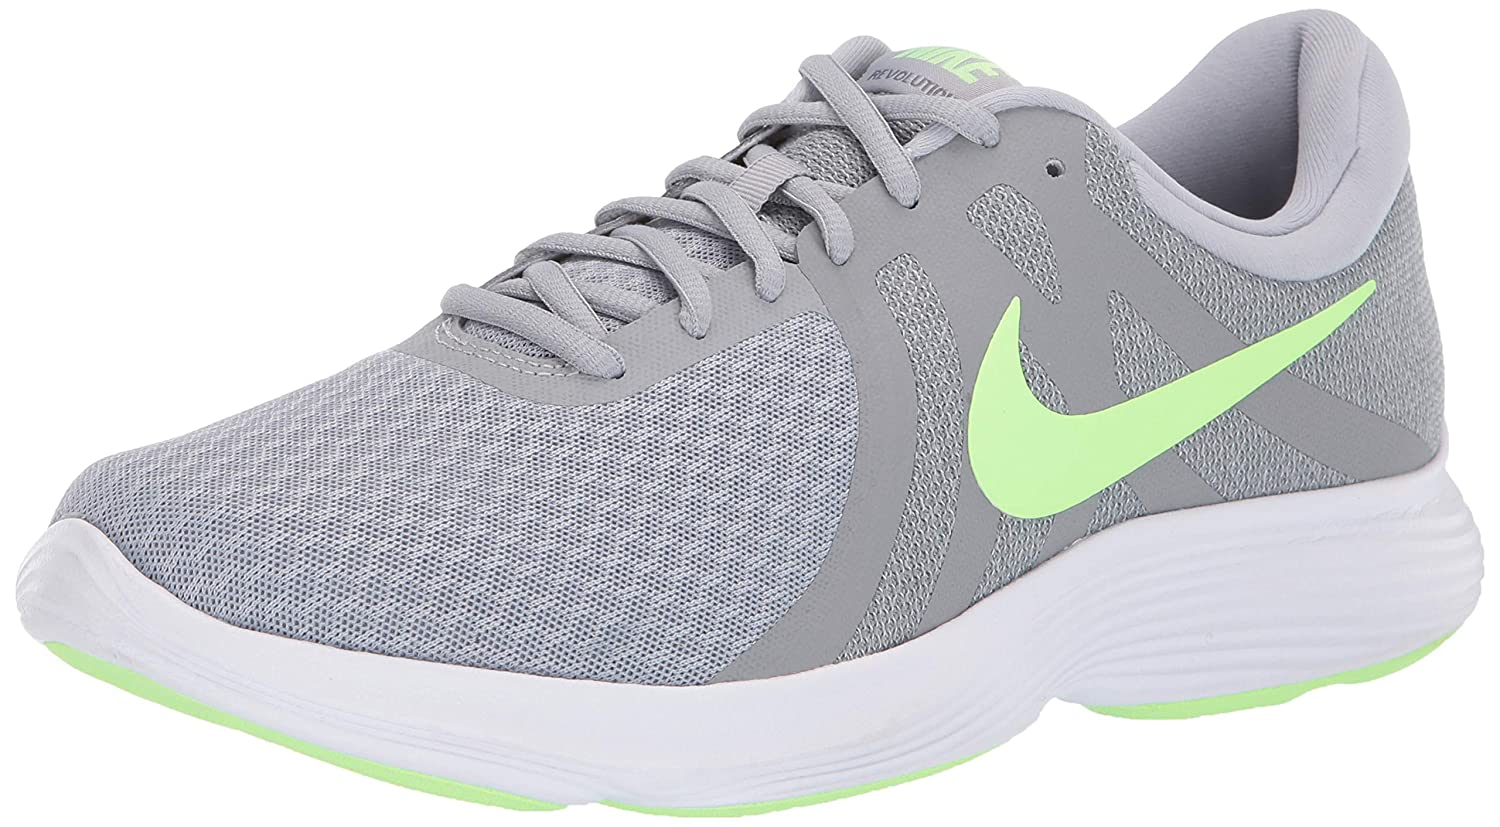 [ナイキ] Wolf AA7402-002 B0059O2KJG Grey/ Wolf US|Wolf Grey/ Lime Blast-cool Grey 9.5 M US 9.5 M US|Wolf Grey/ Lime Blast-cool Grey, いまや茶の湯日本茶今屋静香園:7ace54dd --- mail.varisee.fi